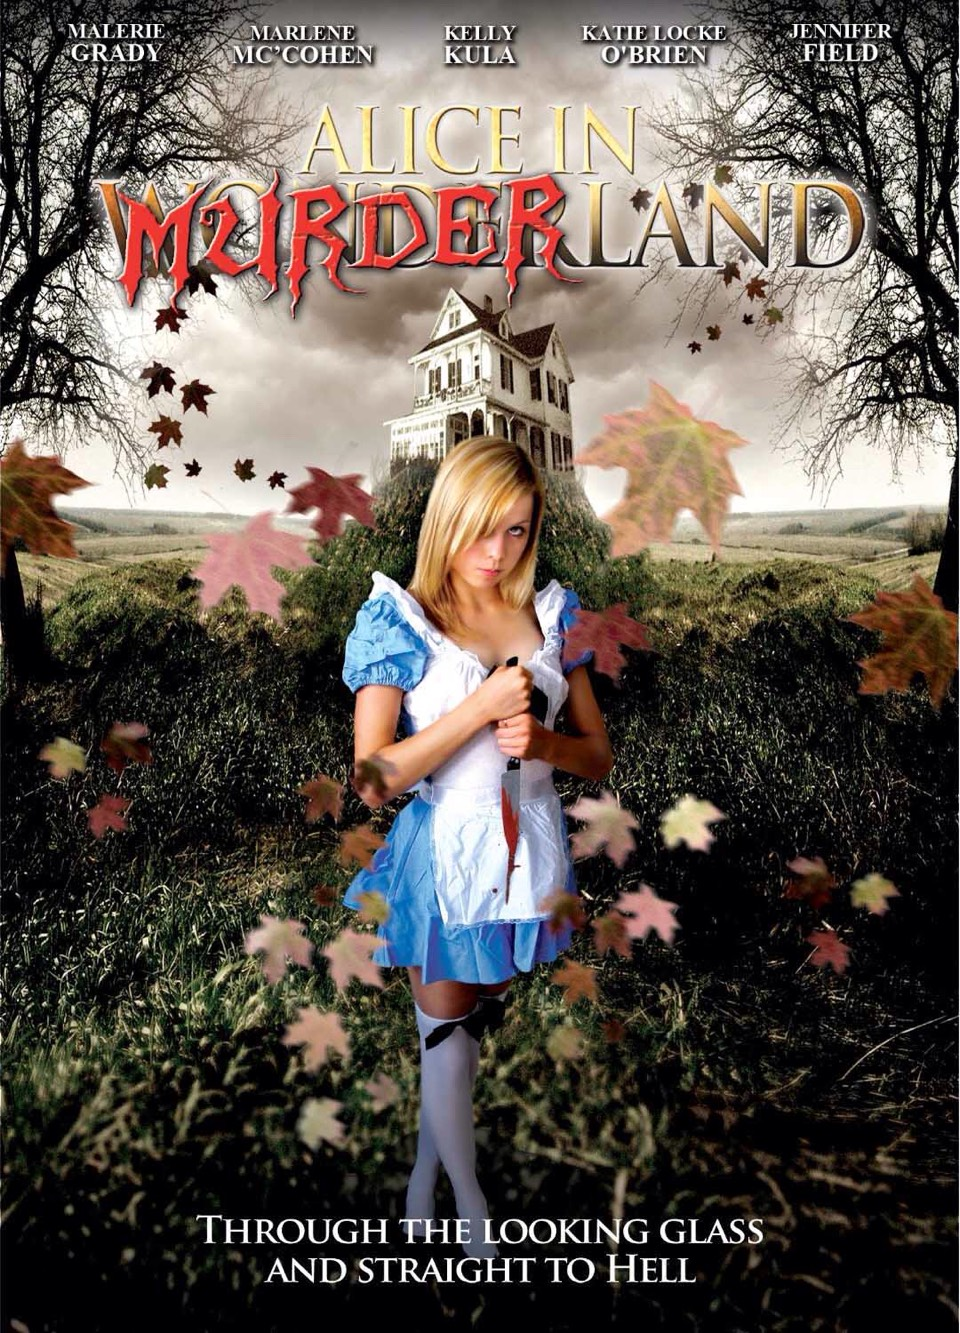 4.) Alice in murderland. This is one of my favorite B+ scary movies. It looks like they used a old video camera and bad acting.